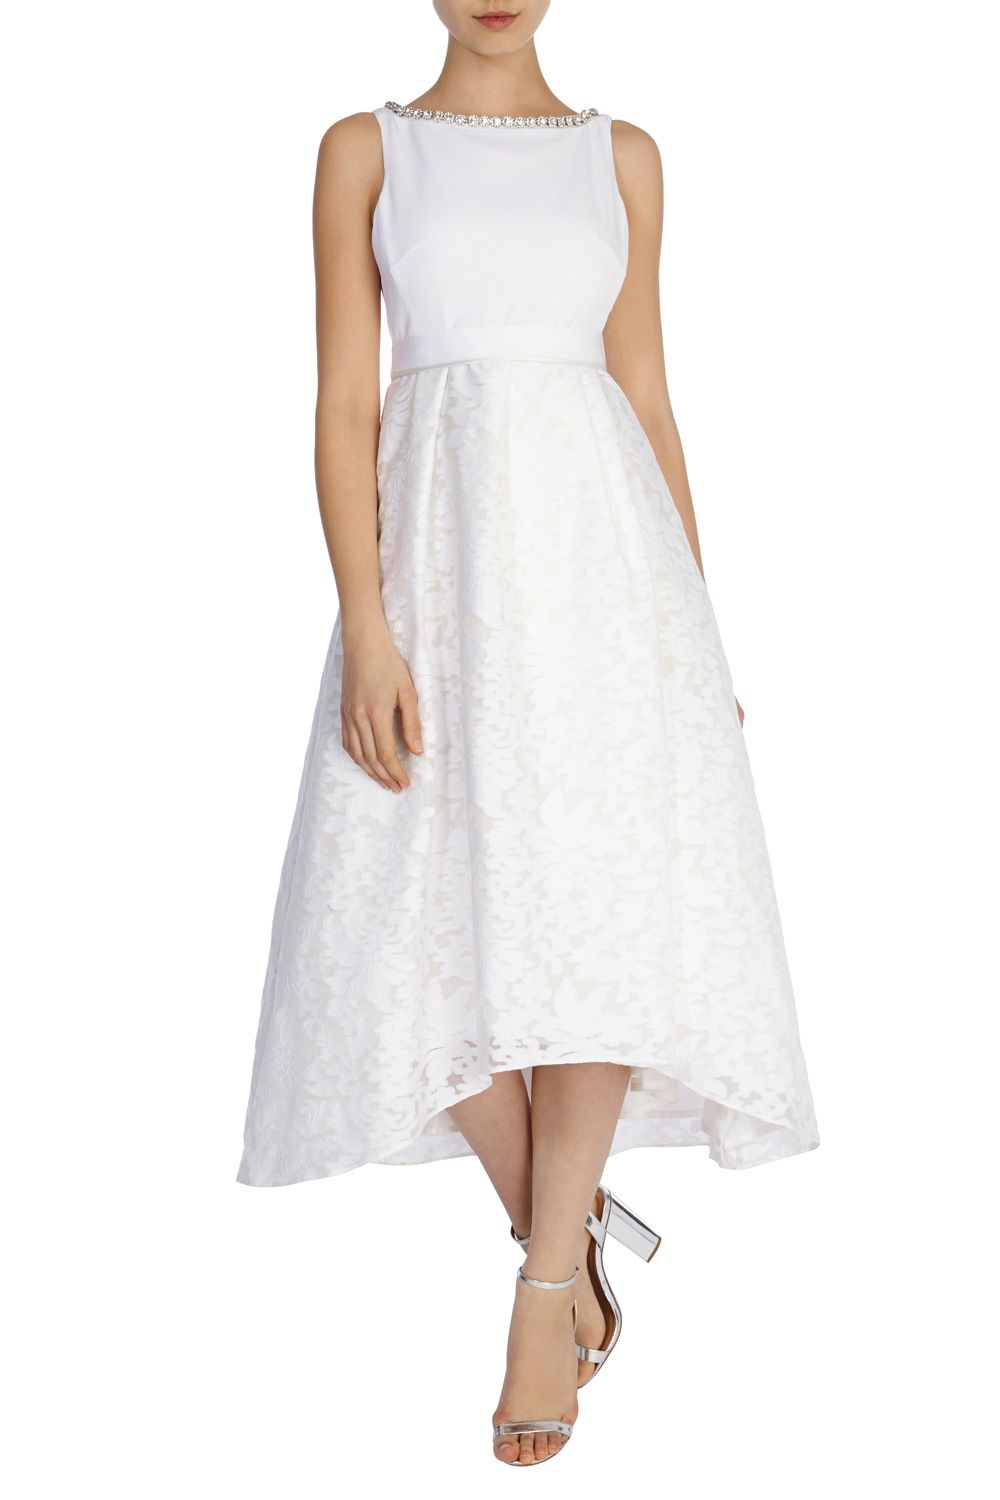 Cheap Tea Length Wedding Dresses And Budget Short Affordable Stylish For